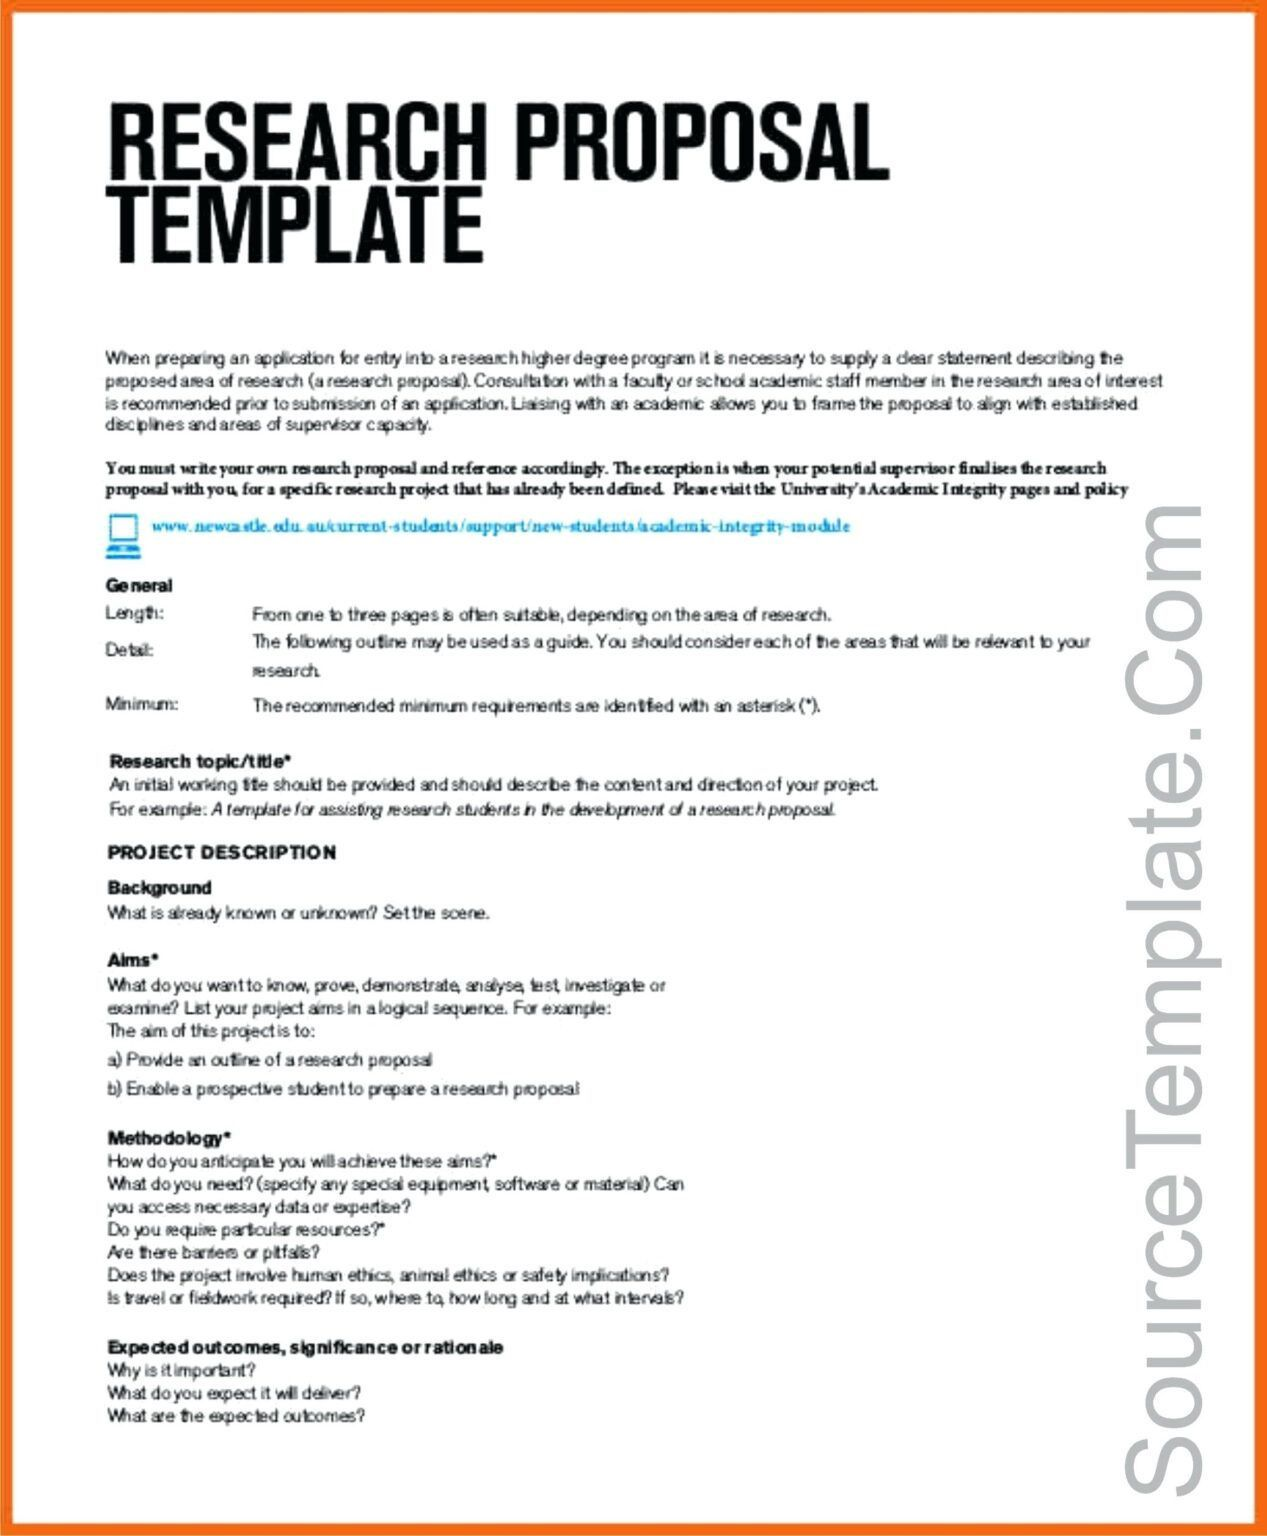 001 Amazing Research Project Proposal Template Word Image Full